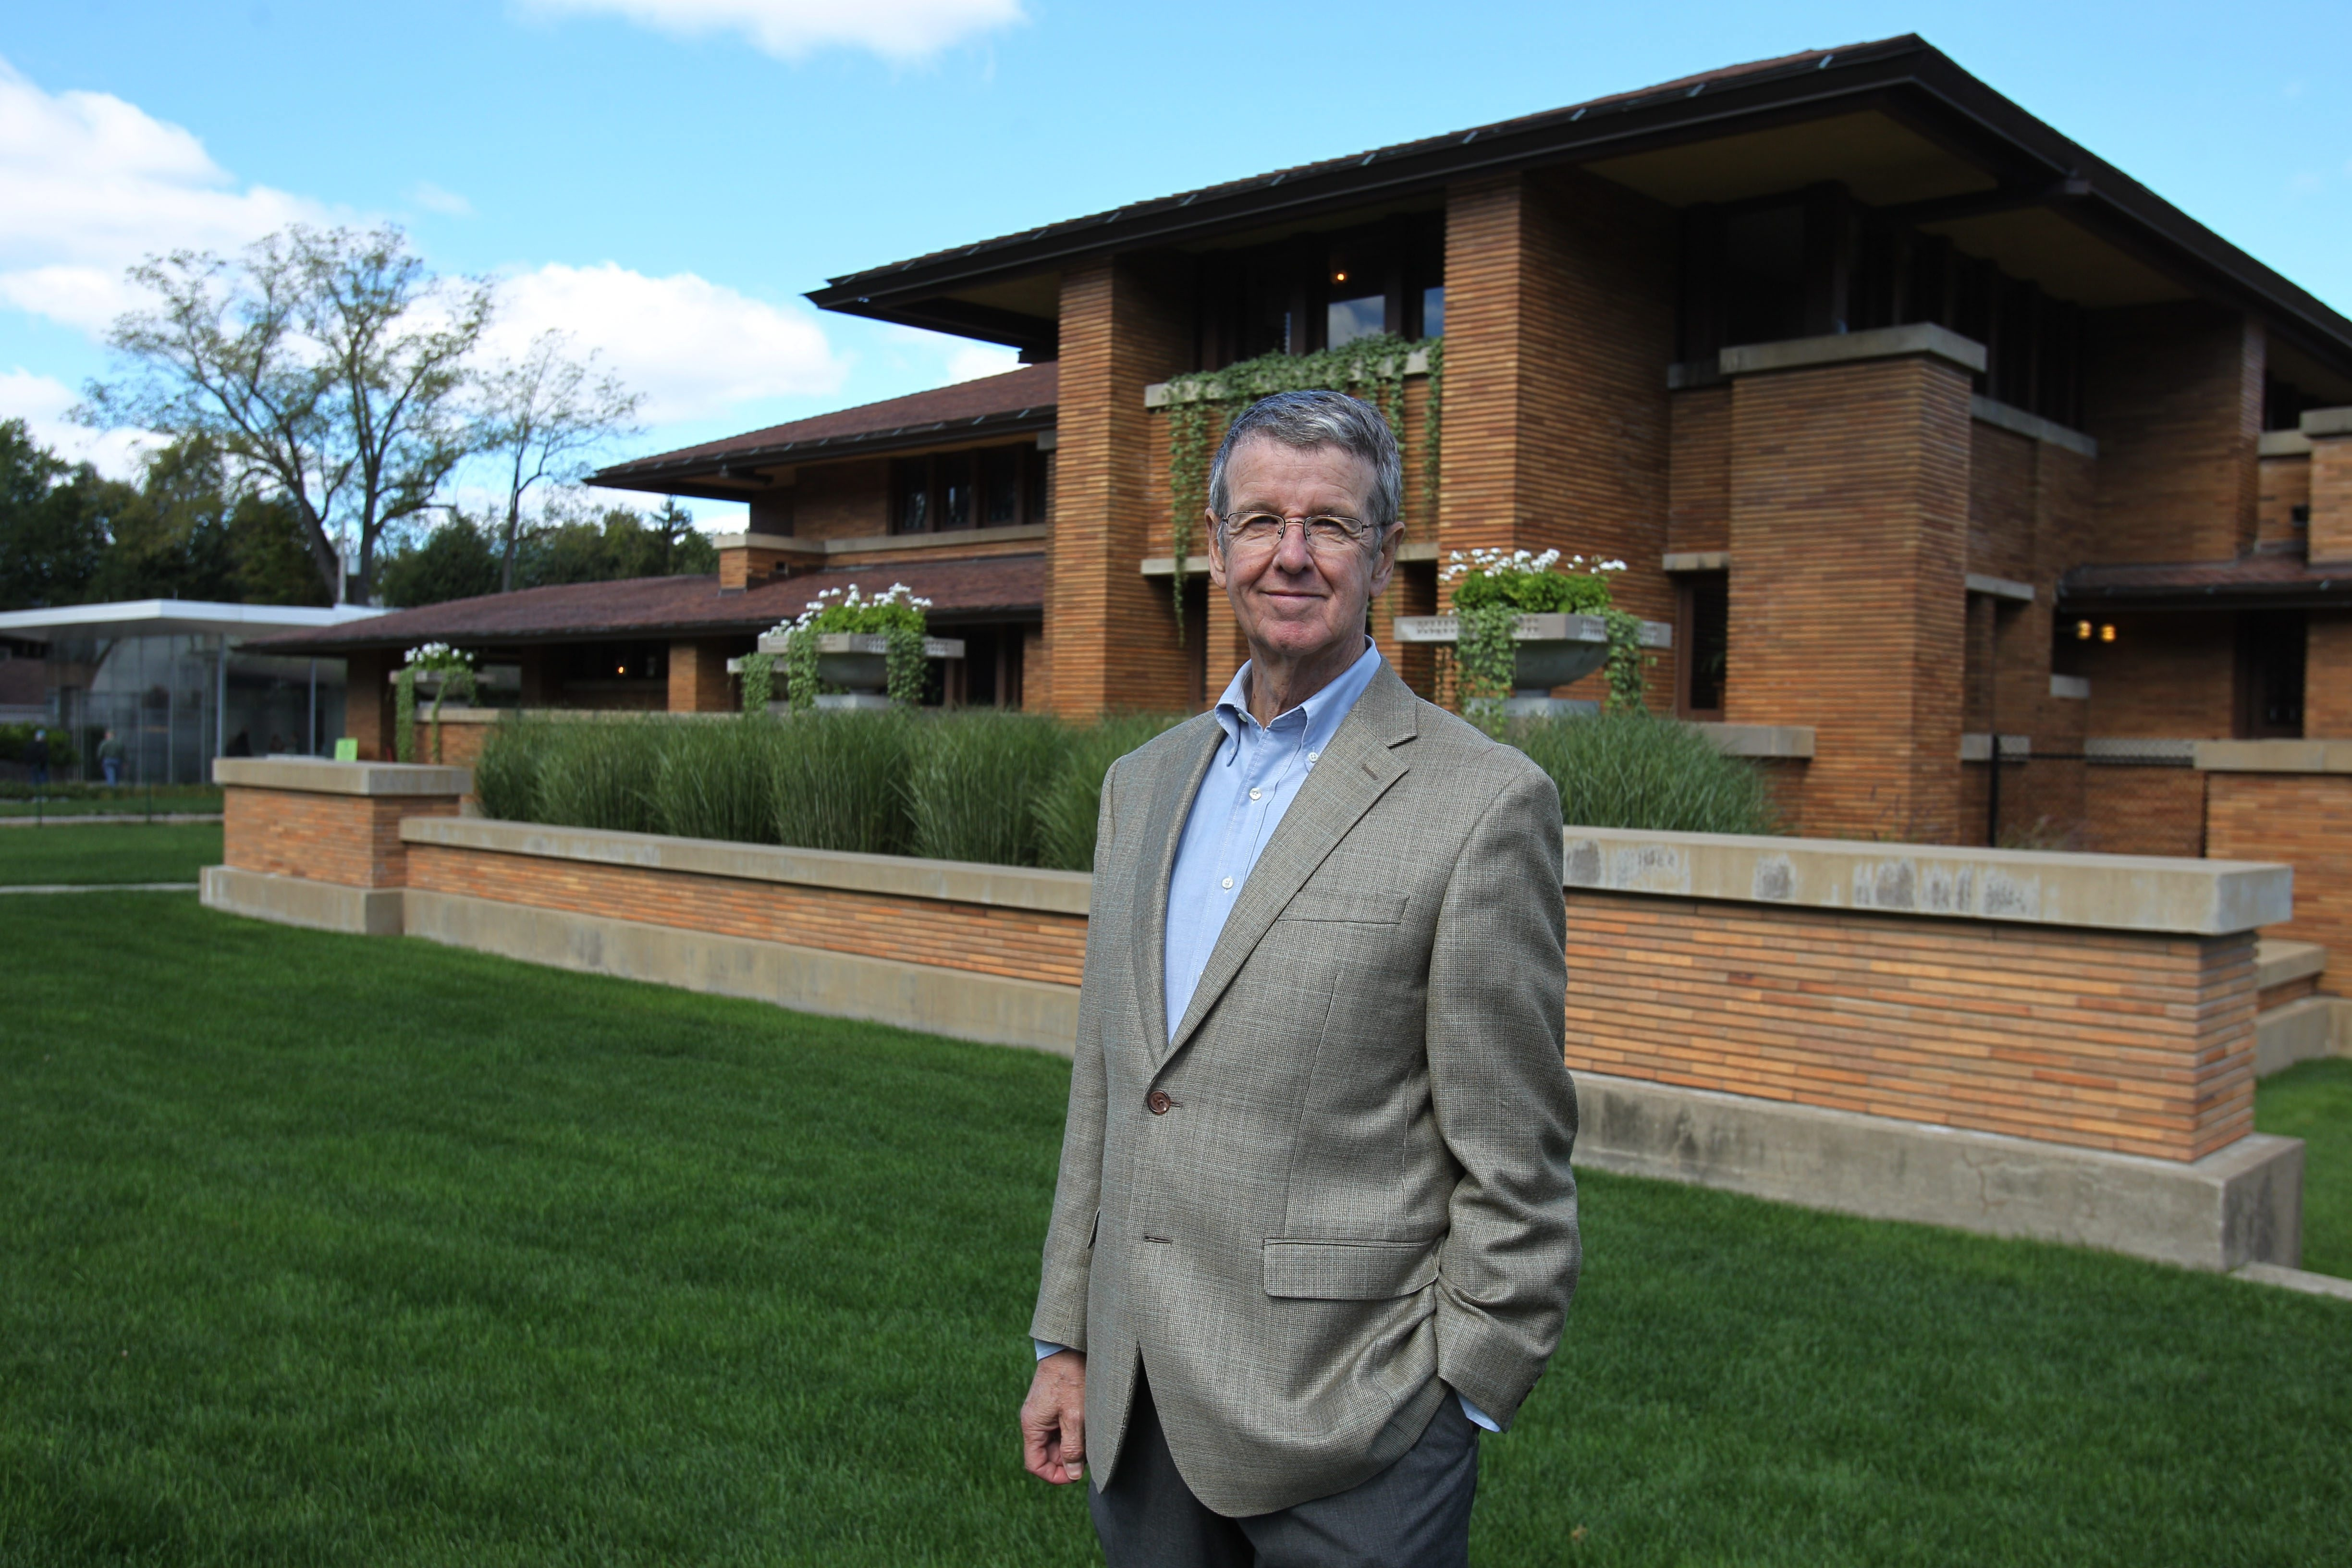 Frank Lloyd Wright scholar Jack Quinan, a UB art historian who has written three books on the architect, opens a three-part lecture series on Wright and Modernism at 7 p.m. today in Martin House Complex's Greatbatch Pavilion.